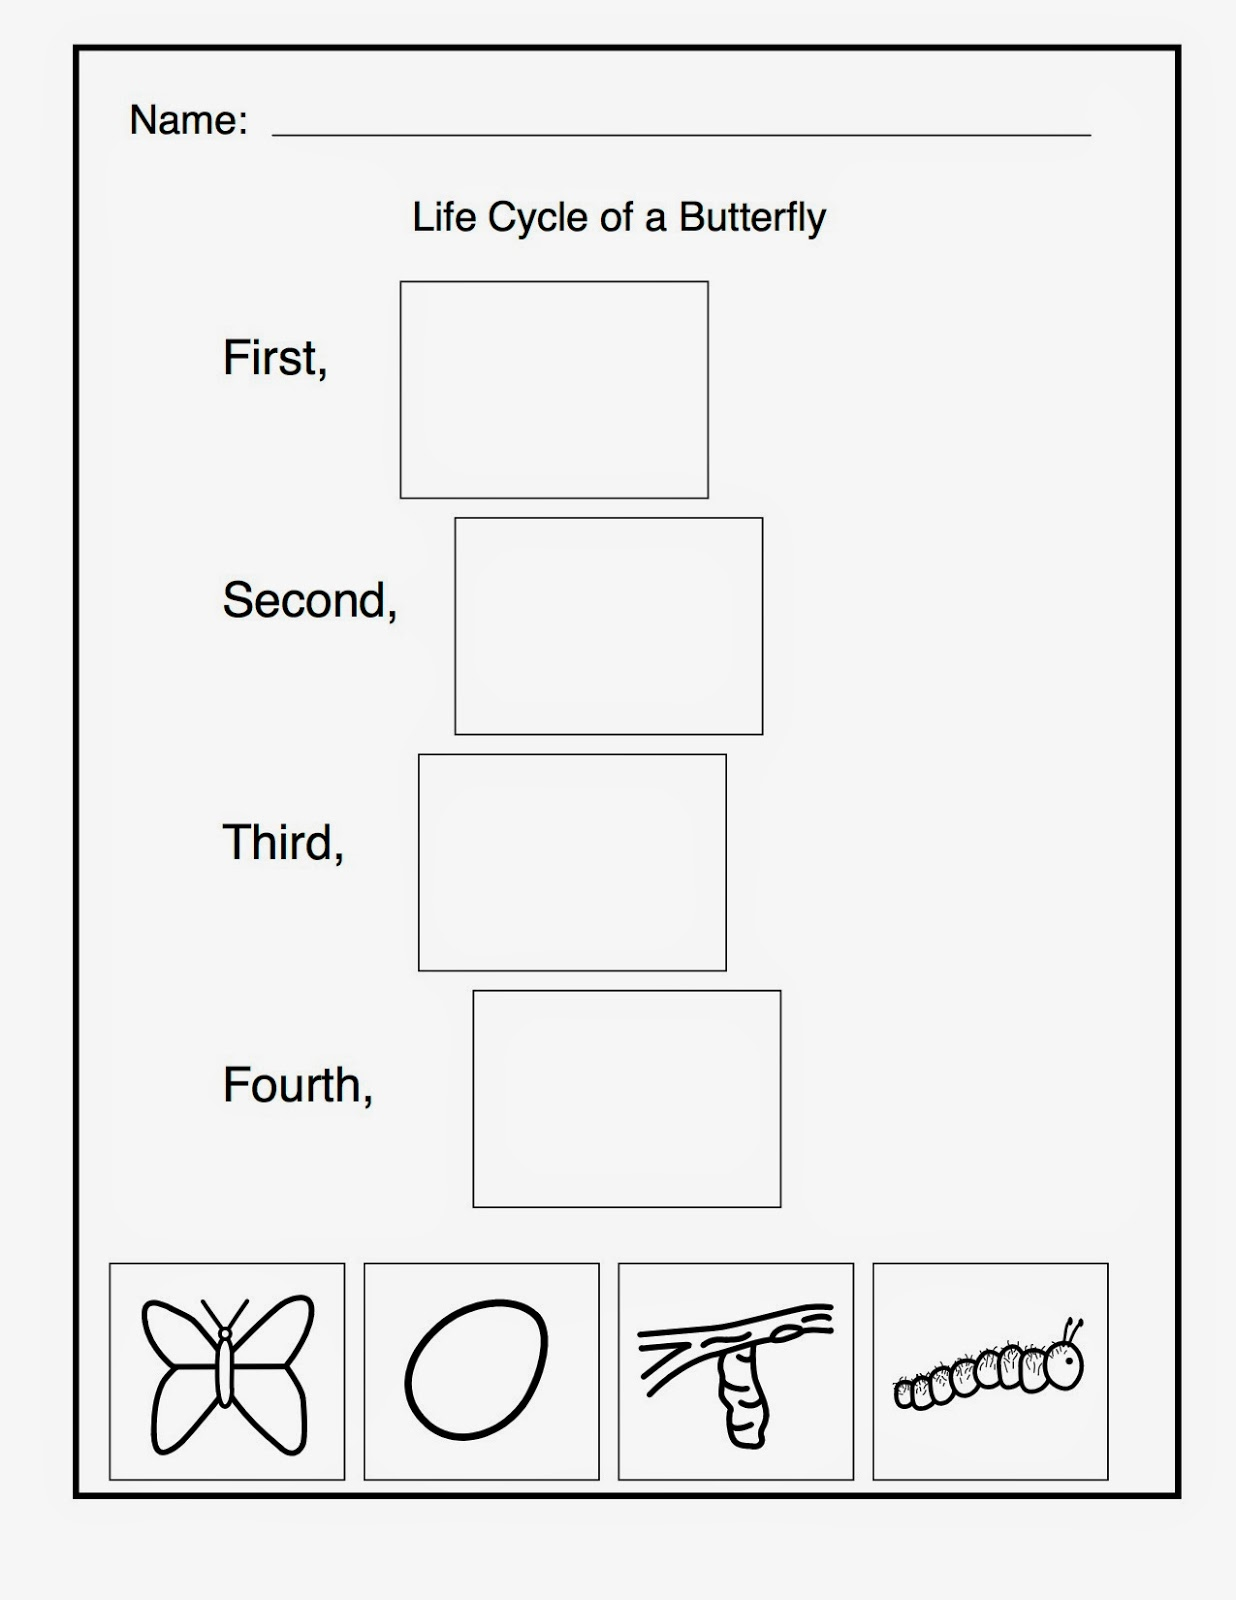 Worksheet Butterfly Life Cycle Printables Wosenly Free Worksheet – Butterfly Cycle Worksheet